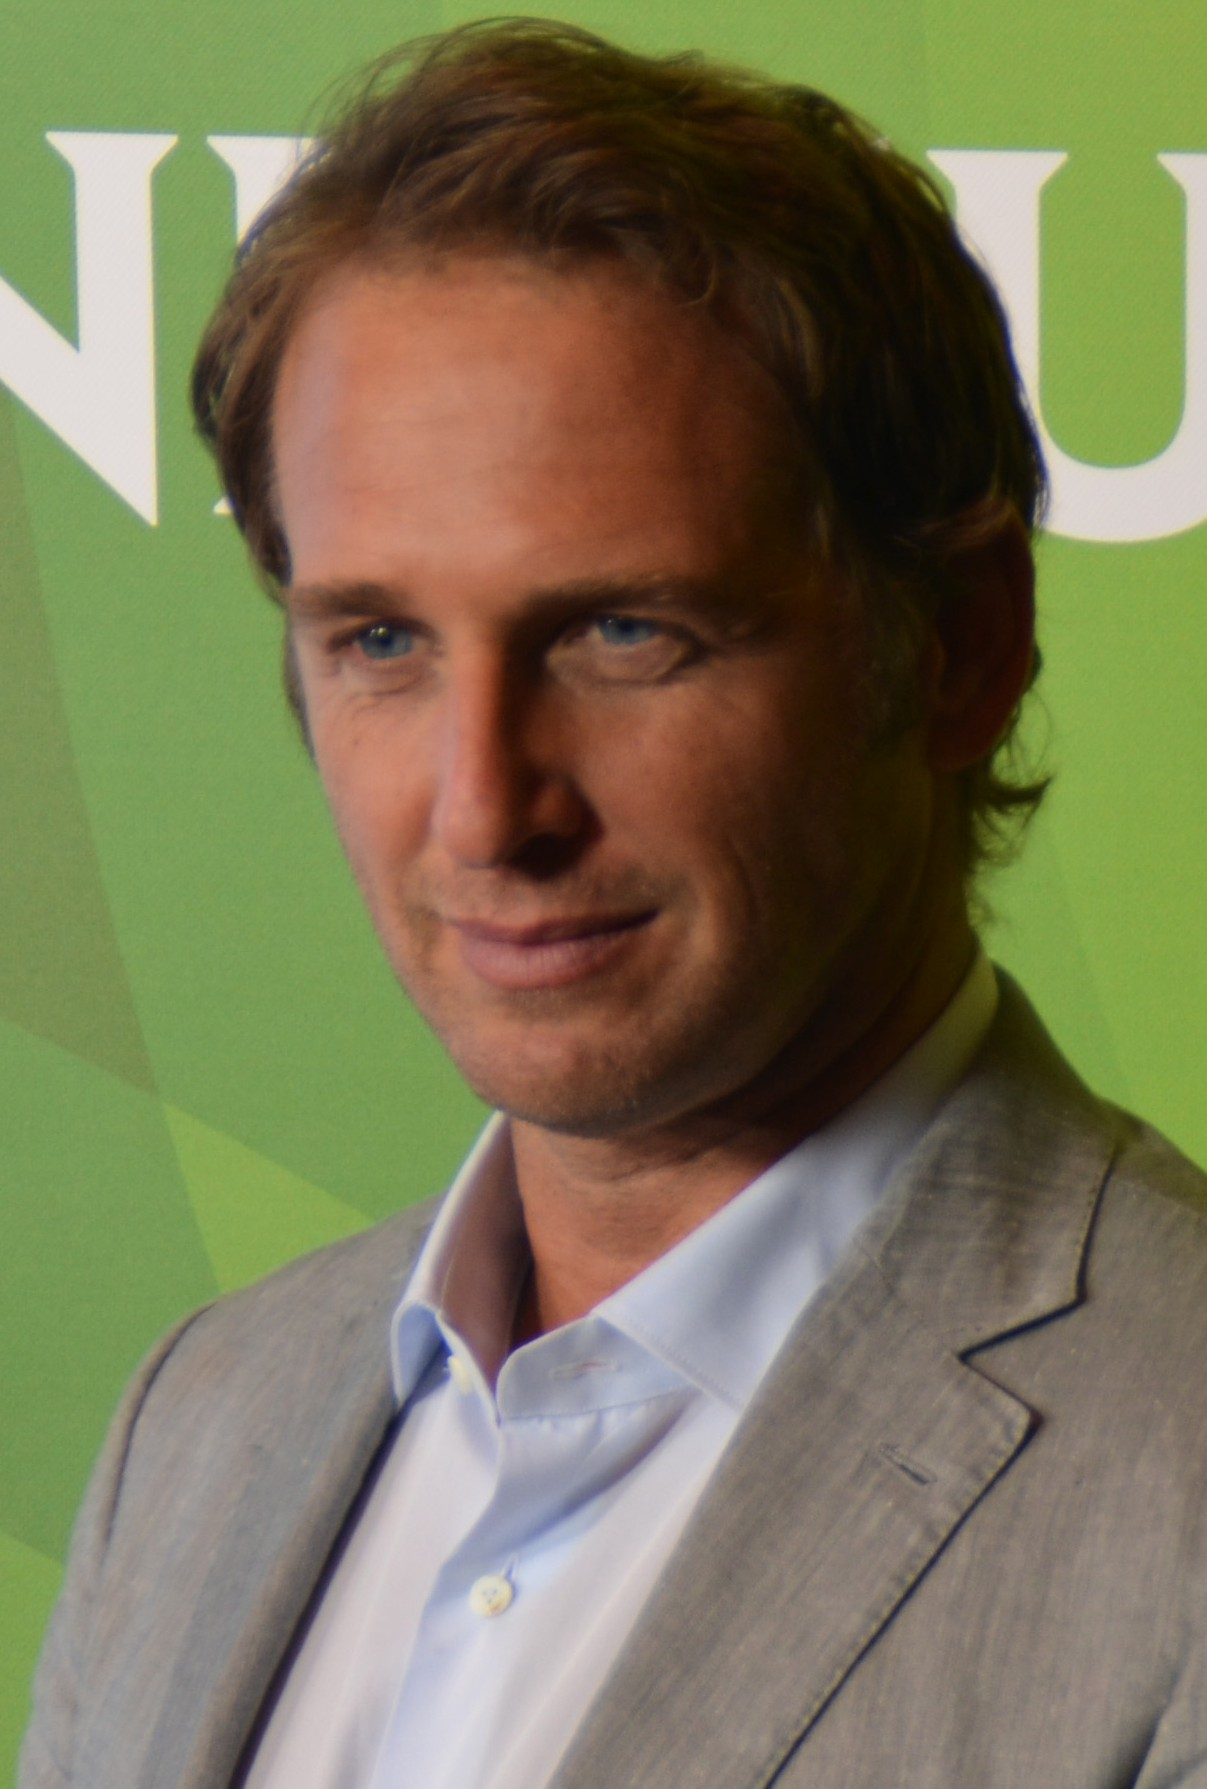 The 47-year old son of father Don Maurer and mother Michele  LeFevre Josh Lucas in 2018 photo. Josh Lucas earned a  million dollar salary - leaving the net worth at 16 million in 2018